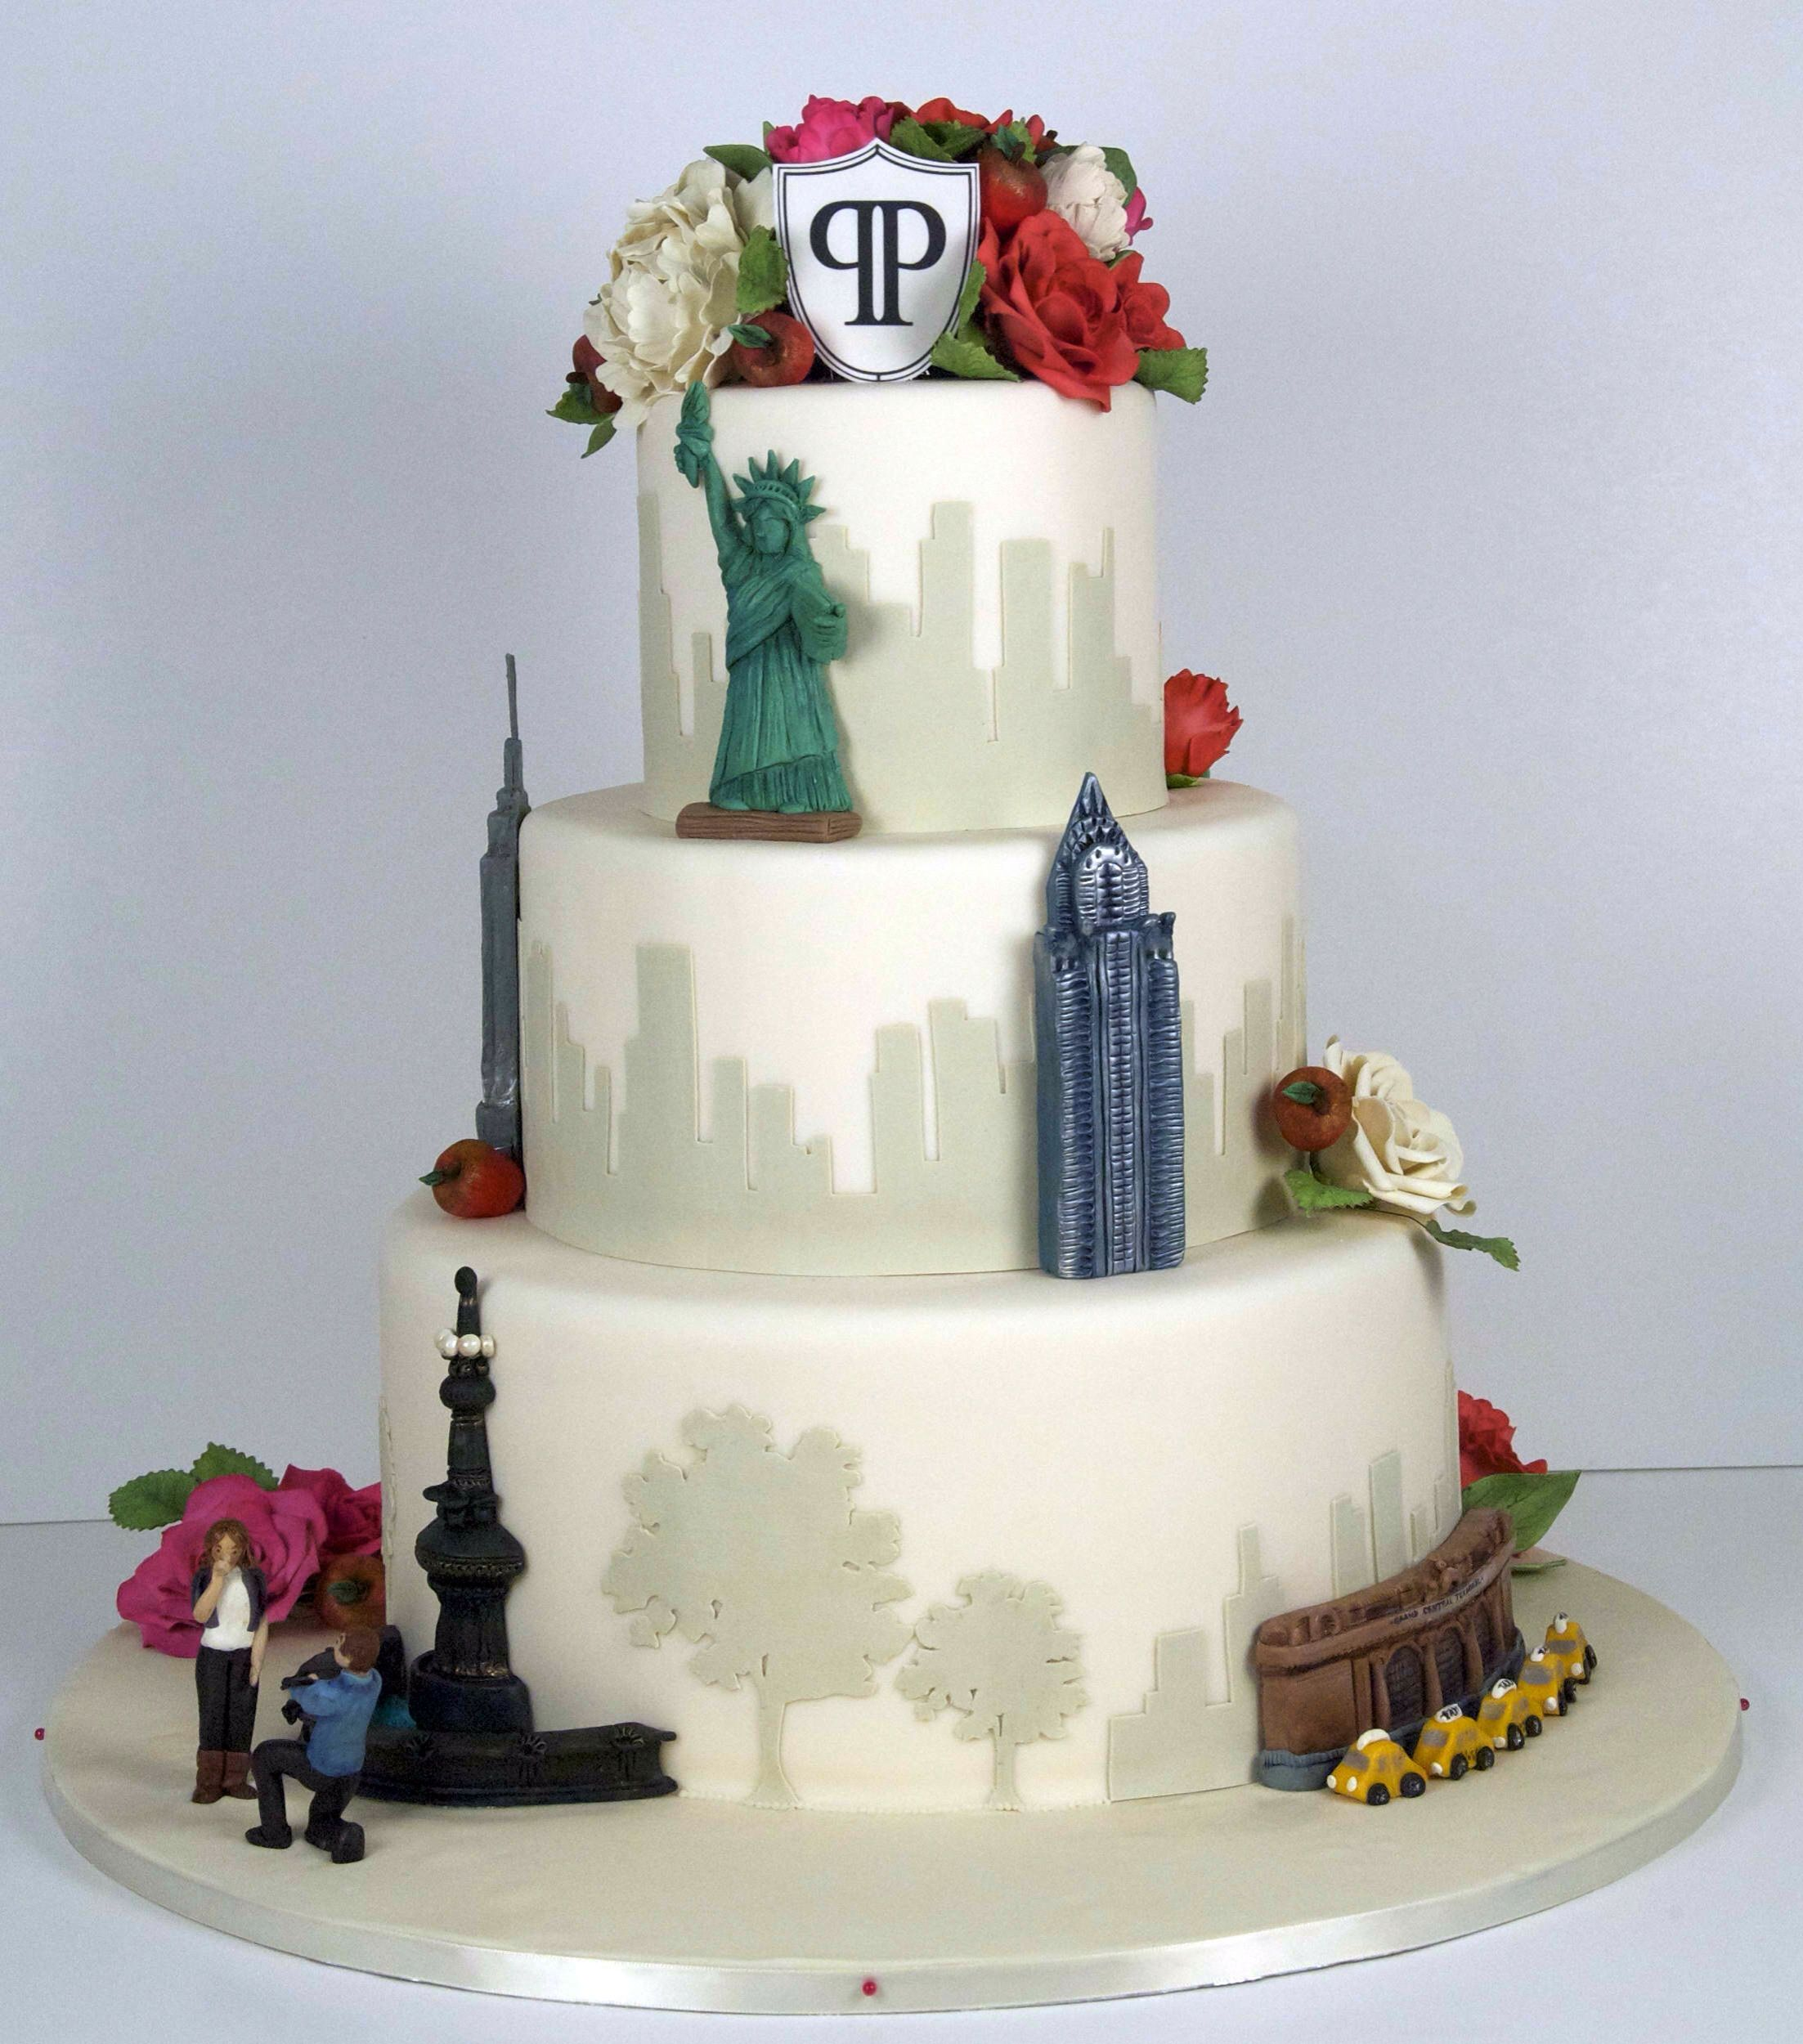 Travel cake | Wedding Inspiration | Pinterest | Travel cake, Cake ...